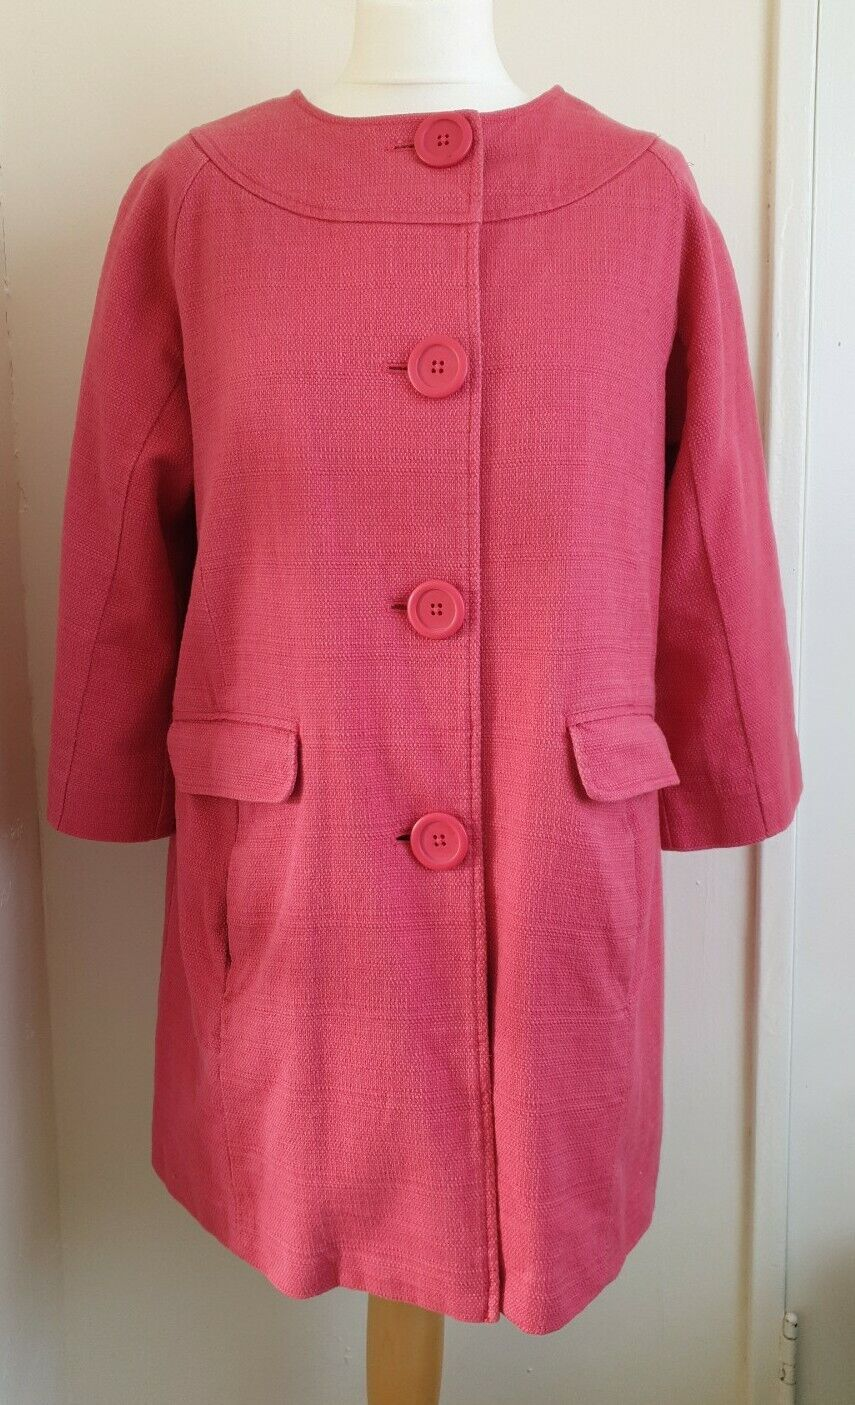 BODEN Coral Pink Woven 100% Cotton Large Buttons 3/4 Sleeved Coat Size 12